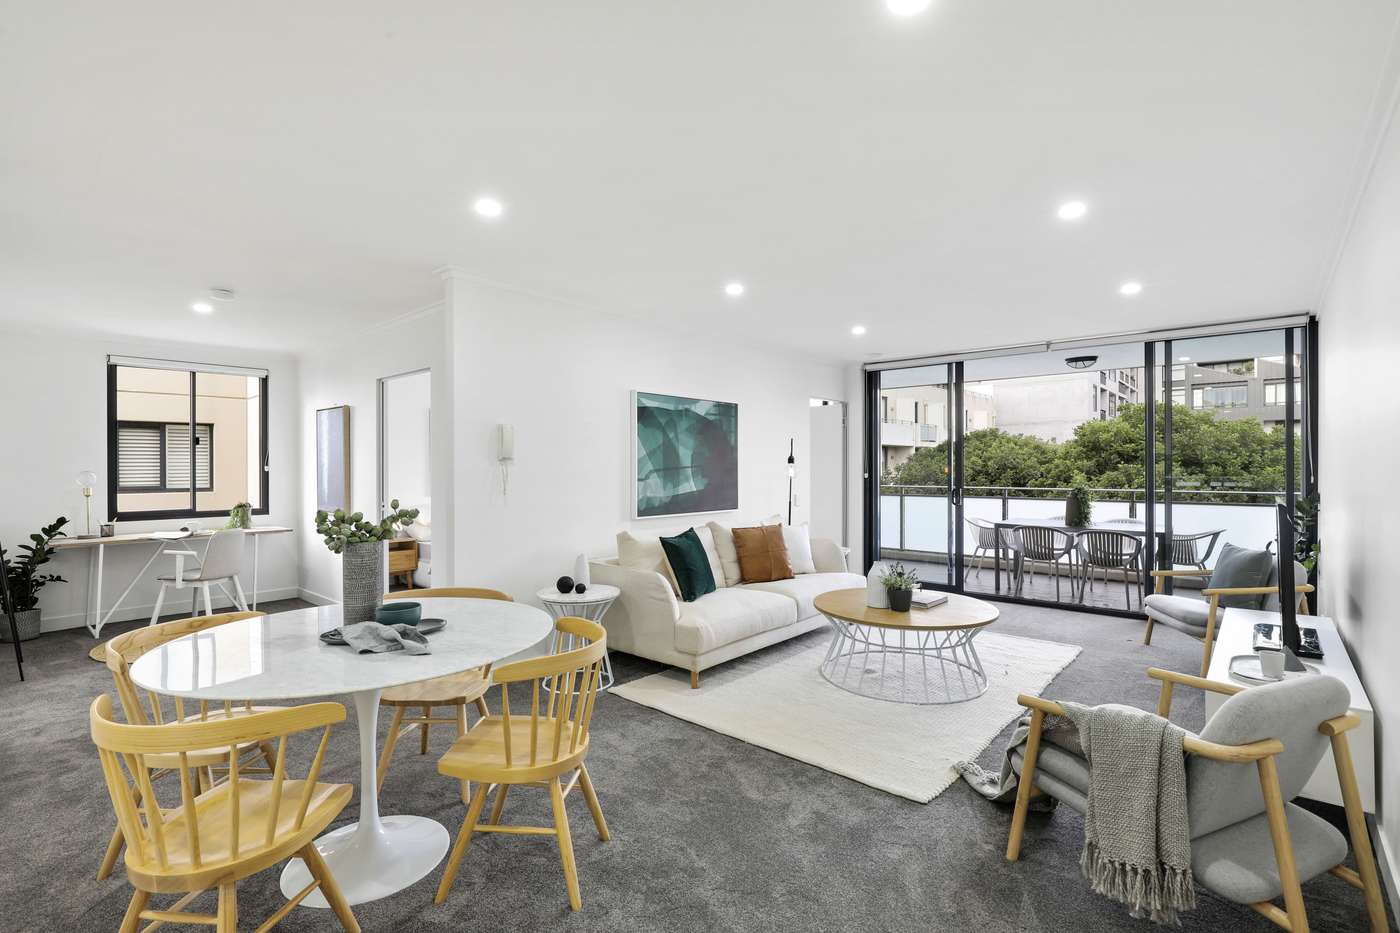 Main view of Homely apartment listing, 2303/8 Eve Street, Erskineville, NSW 2043